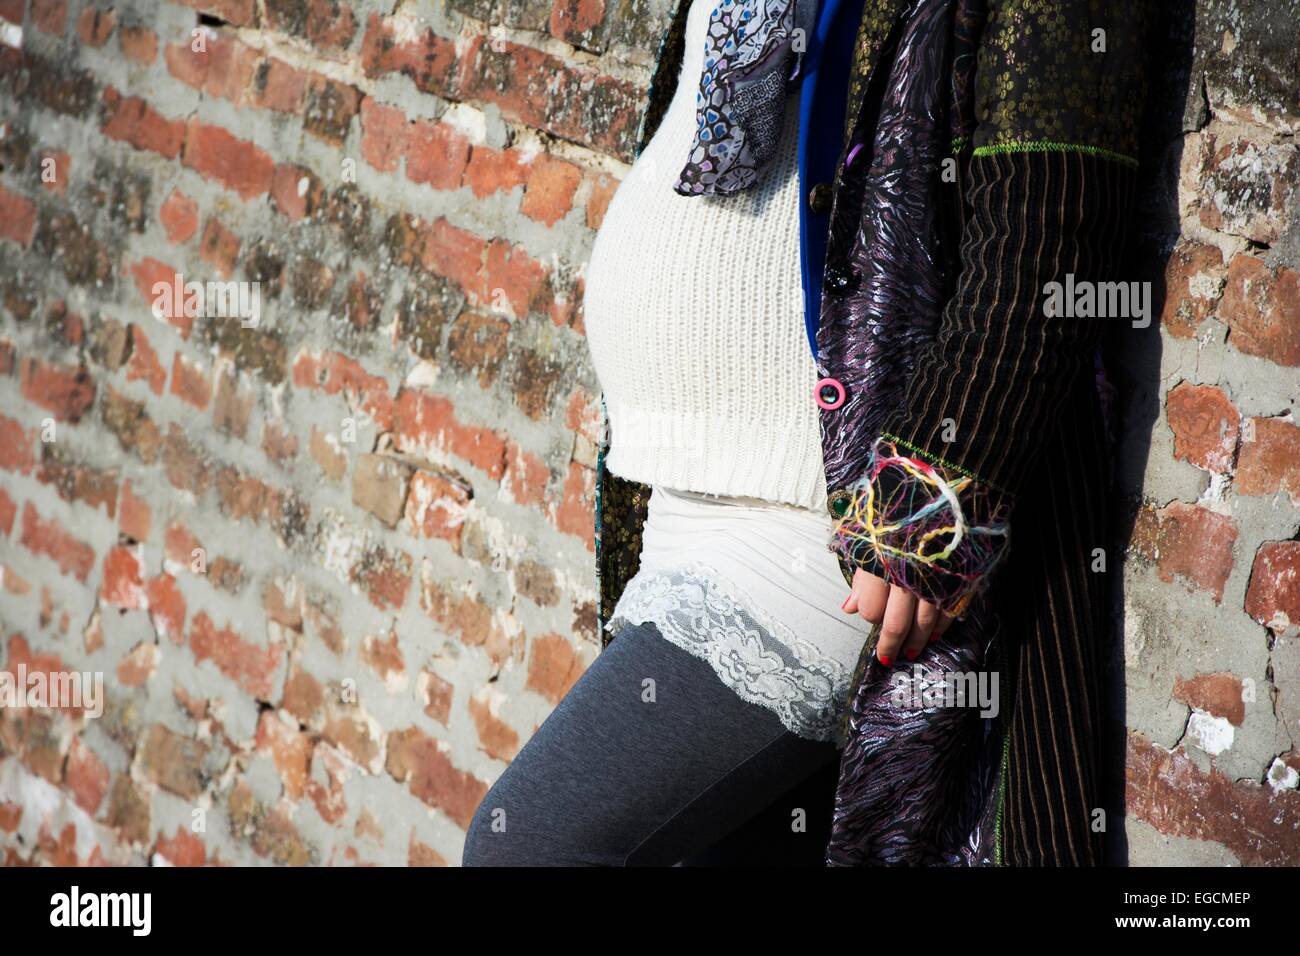 Pregnant woman standing leaned on a brick wall in outdoors - Stock Image